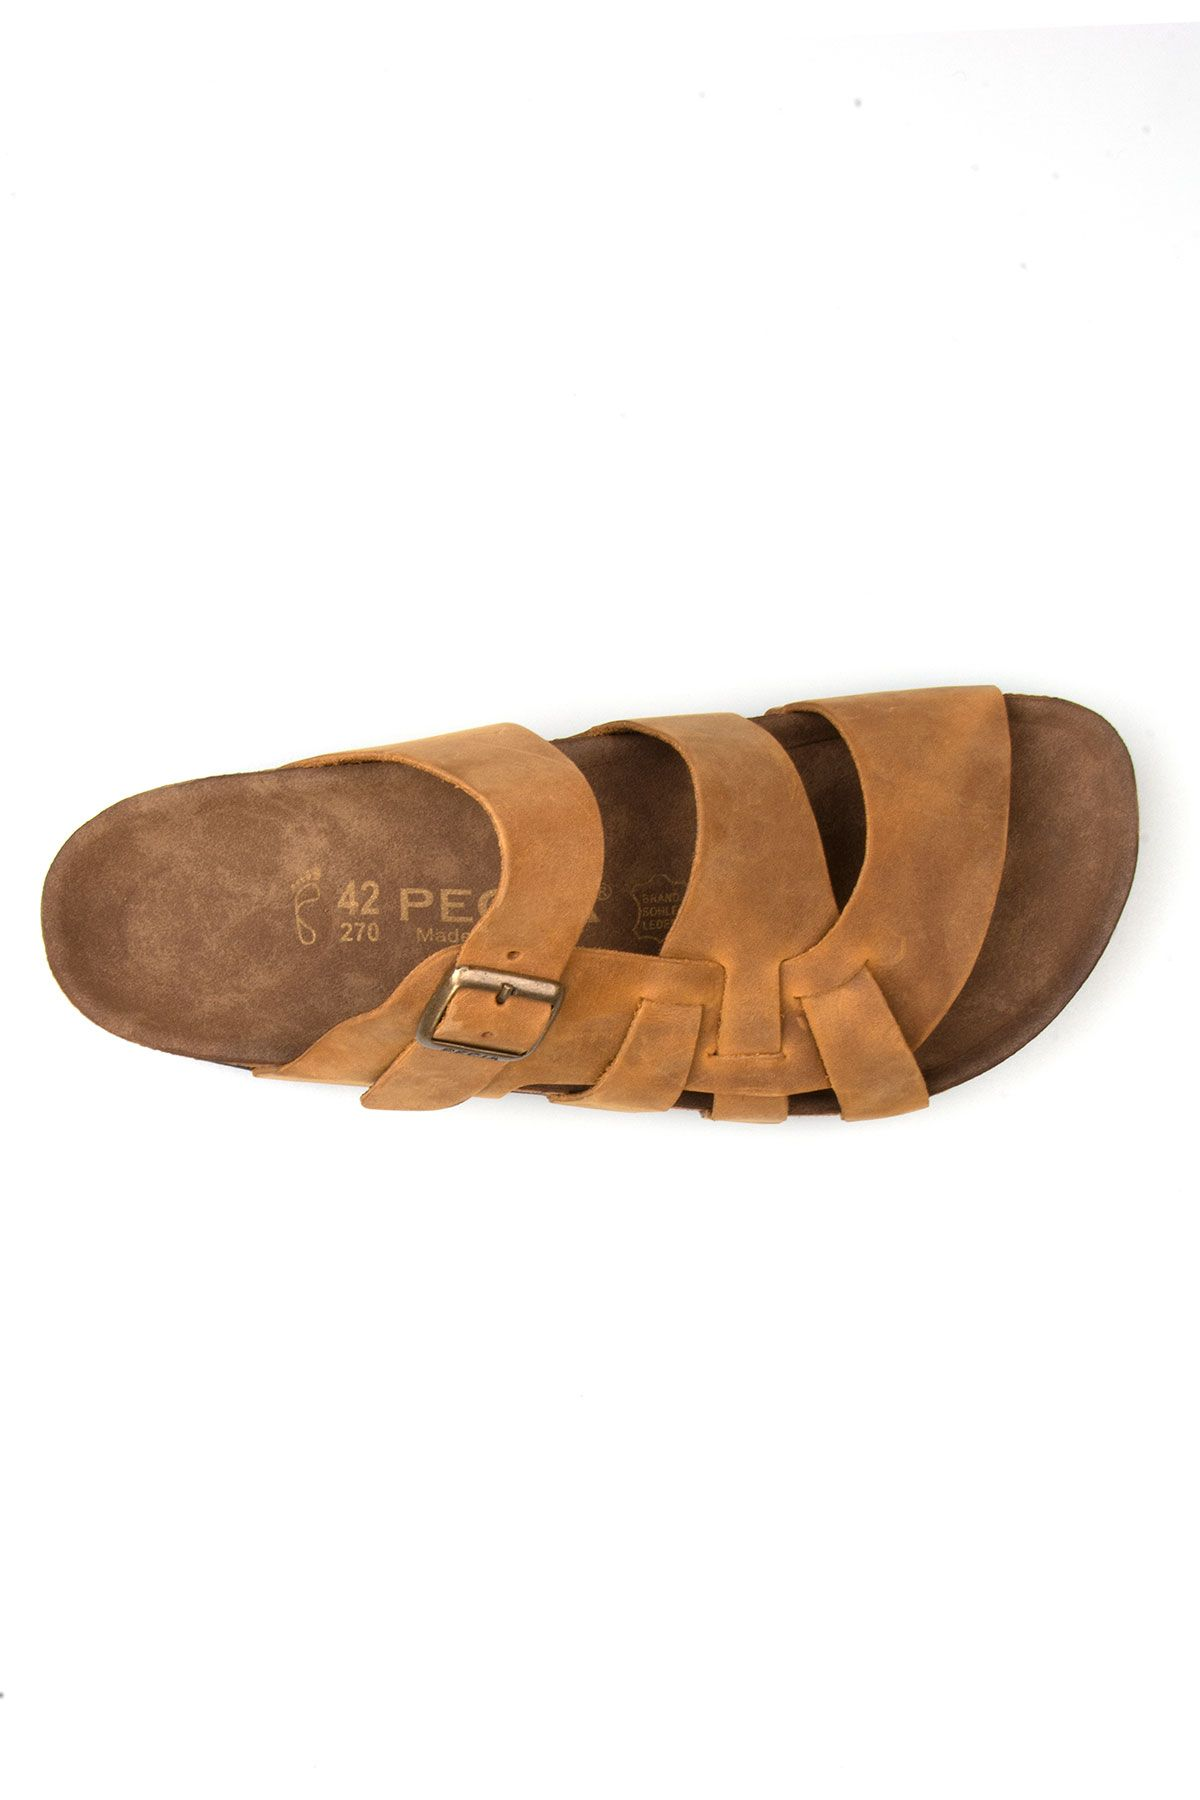 Pegia Genuine Leather Men's Slippers 215015 Sand-colored